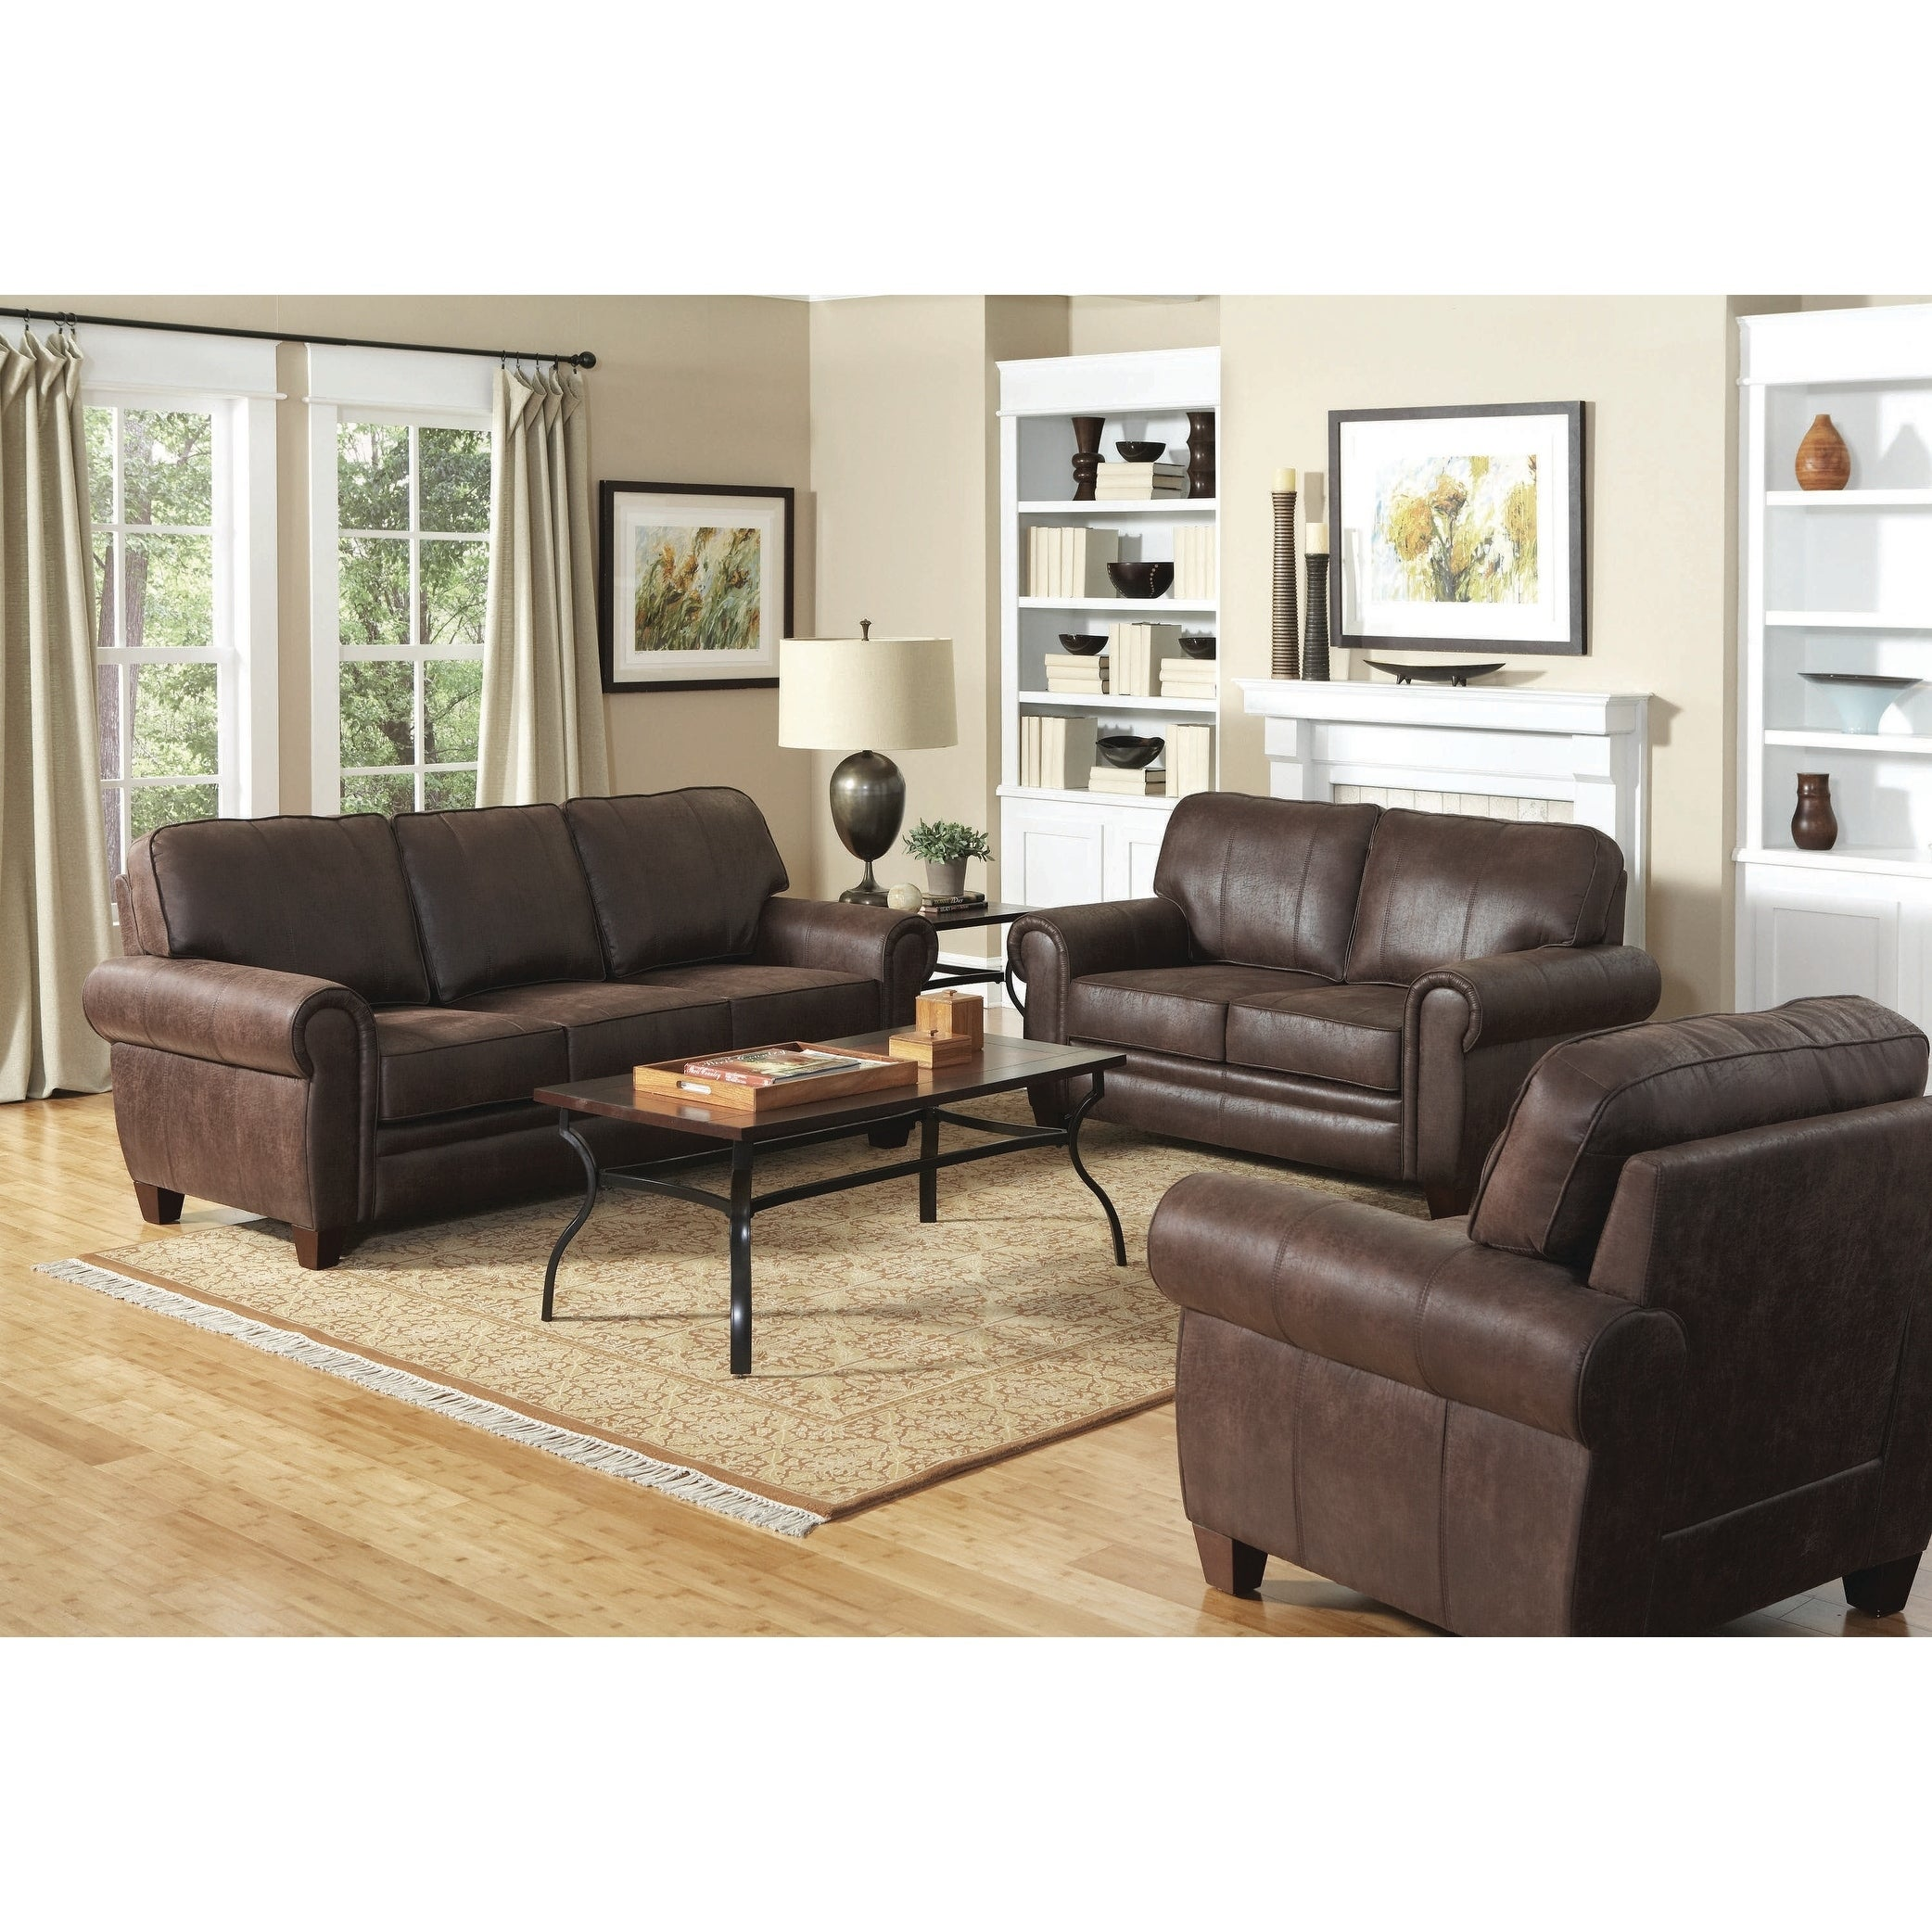 Shop Allingham Traditional Brown 2-piece Living Room Set - On Sale ...